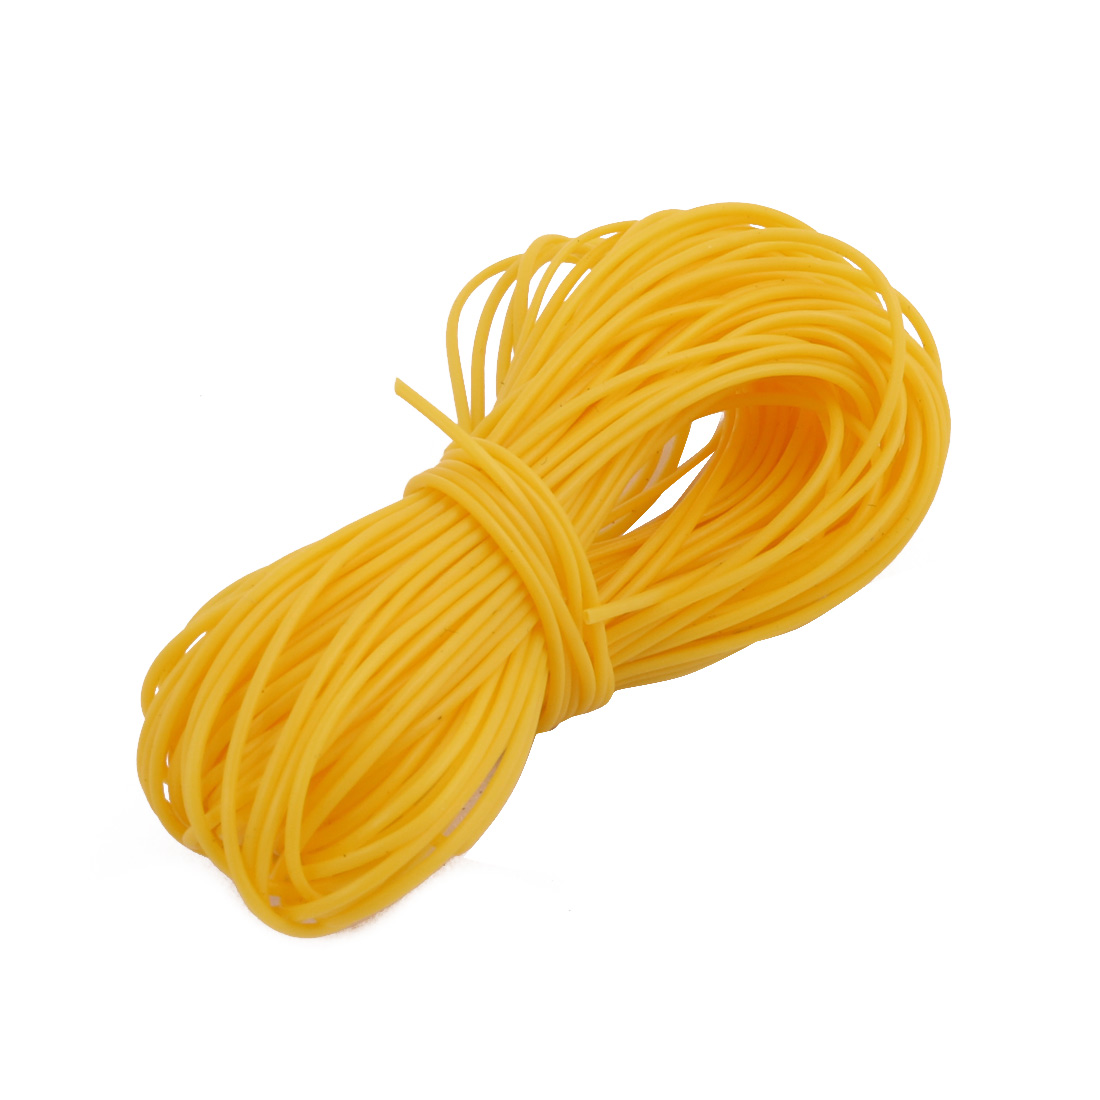 0.66mmx0.96mm PTFE Resistant High Temperature Yellow Tubing 10 Meters 32.8Ft